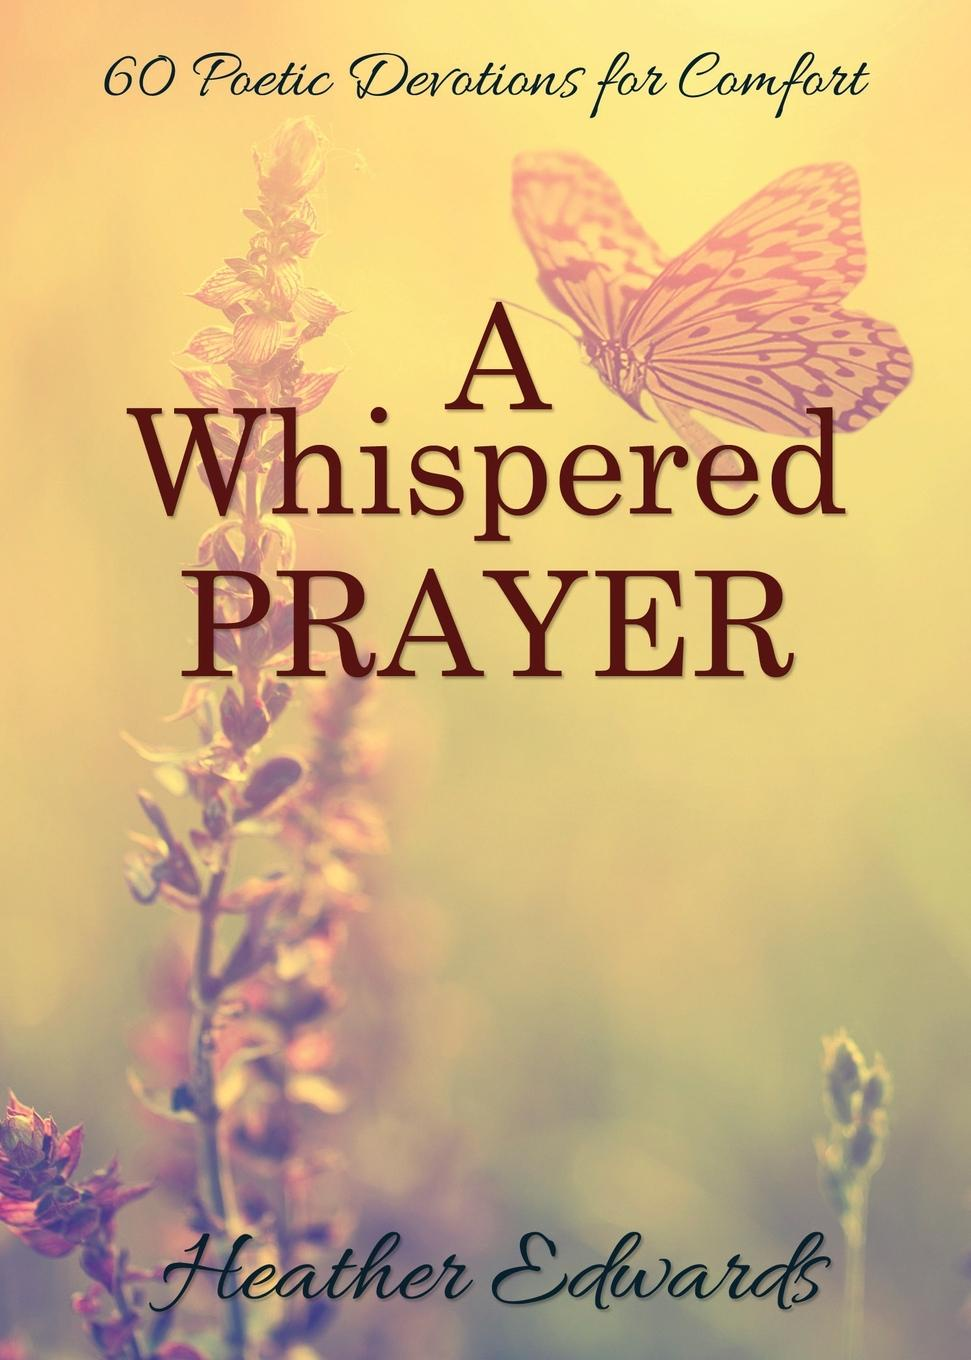 Heather Edwards A Whispered Prayer. 60 Poetic Devotions for Comfort nina rae springfields the power of hope